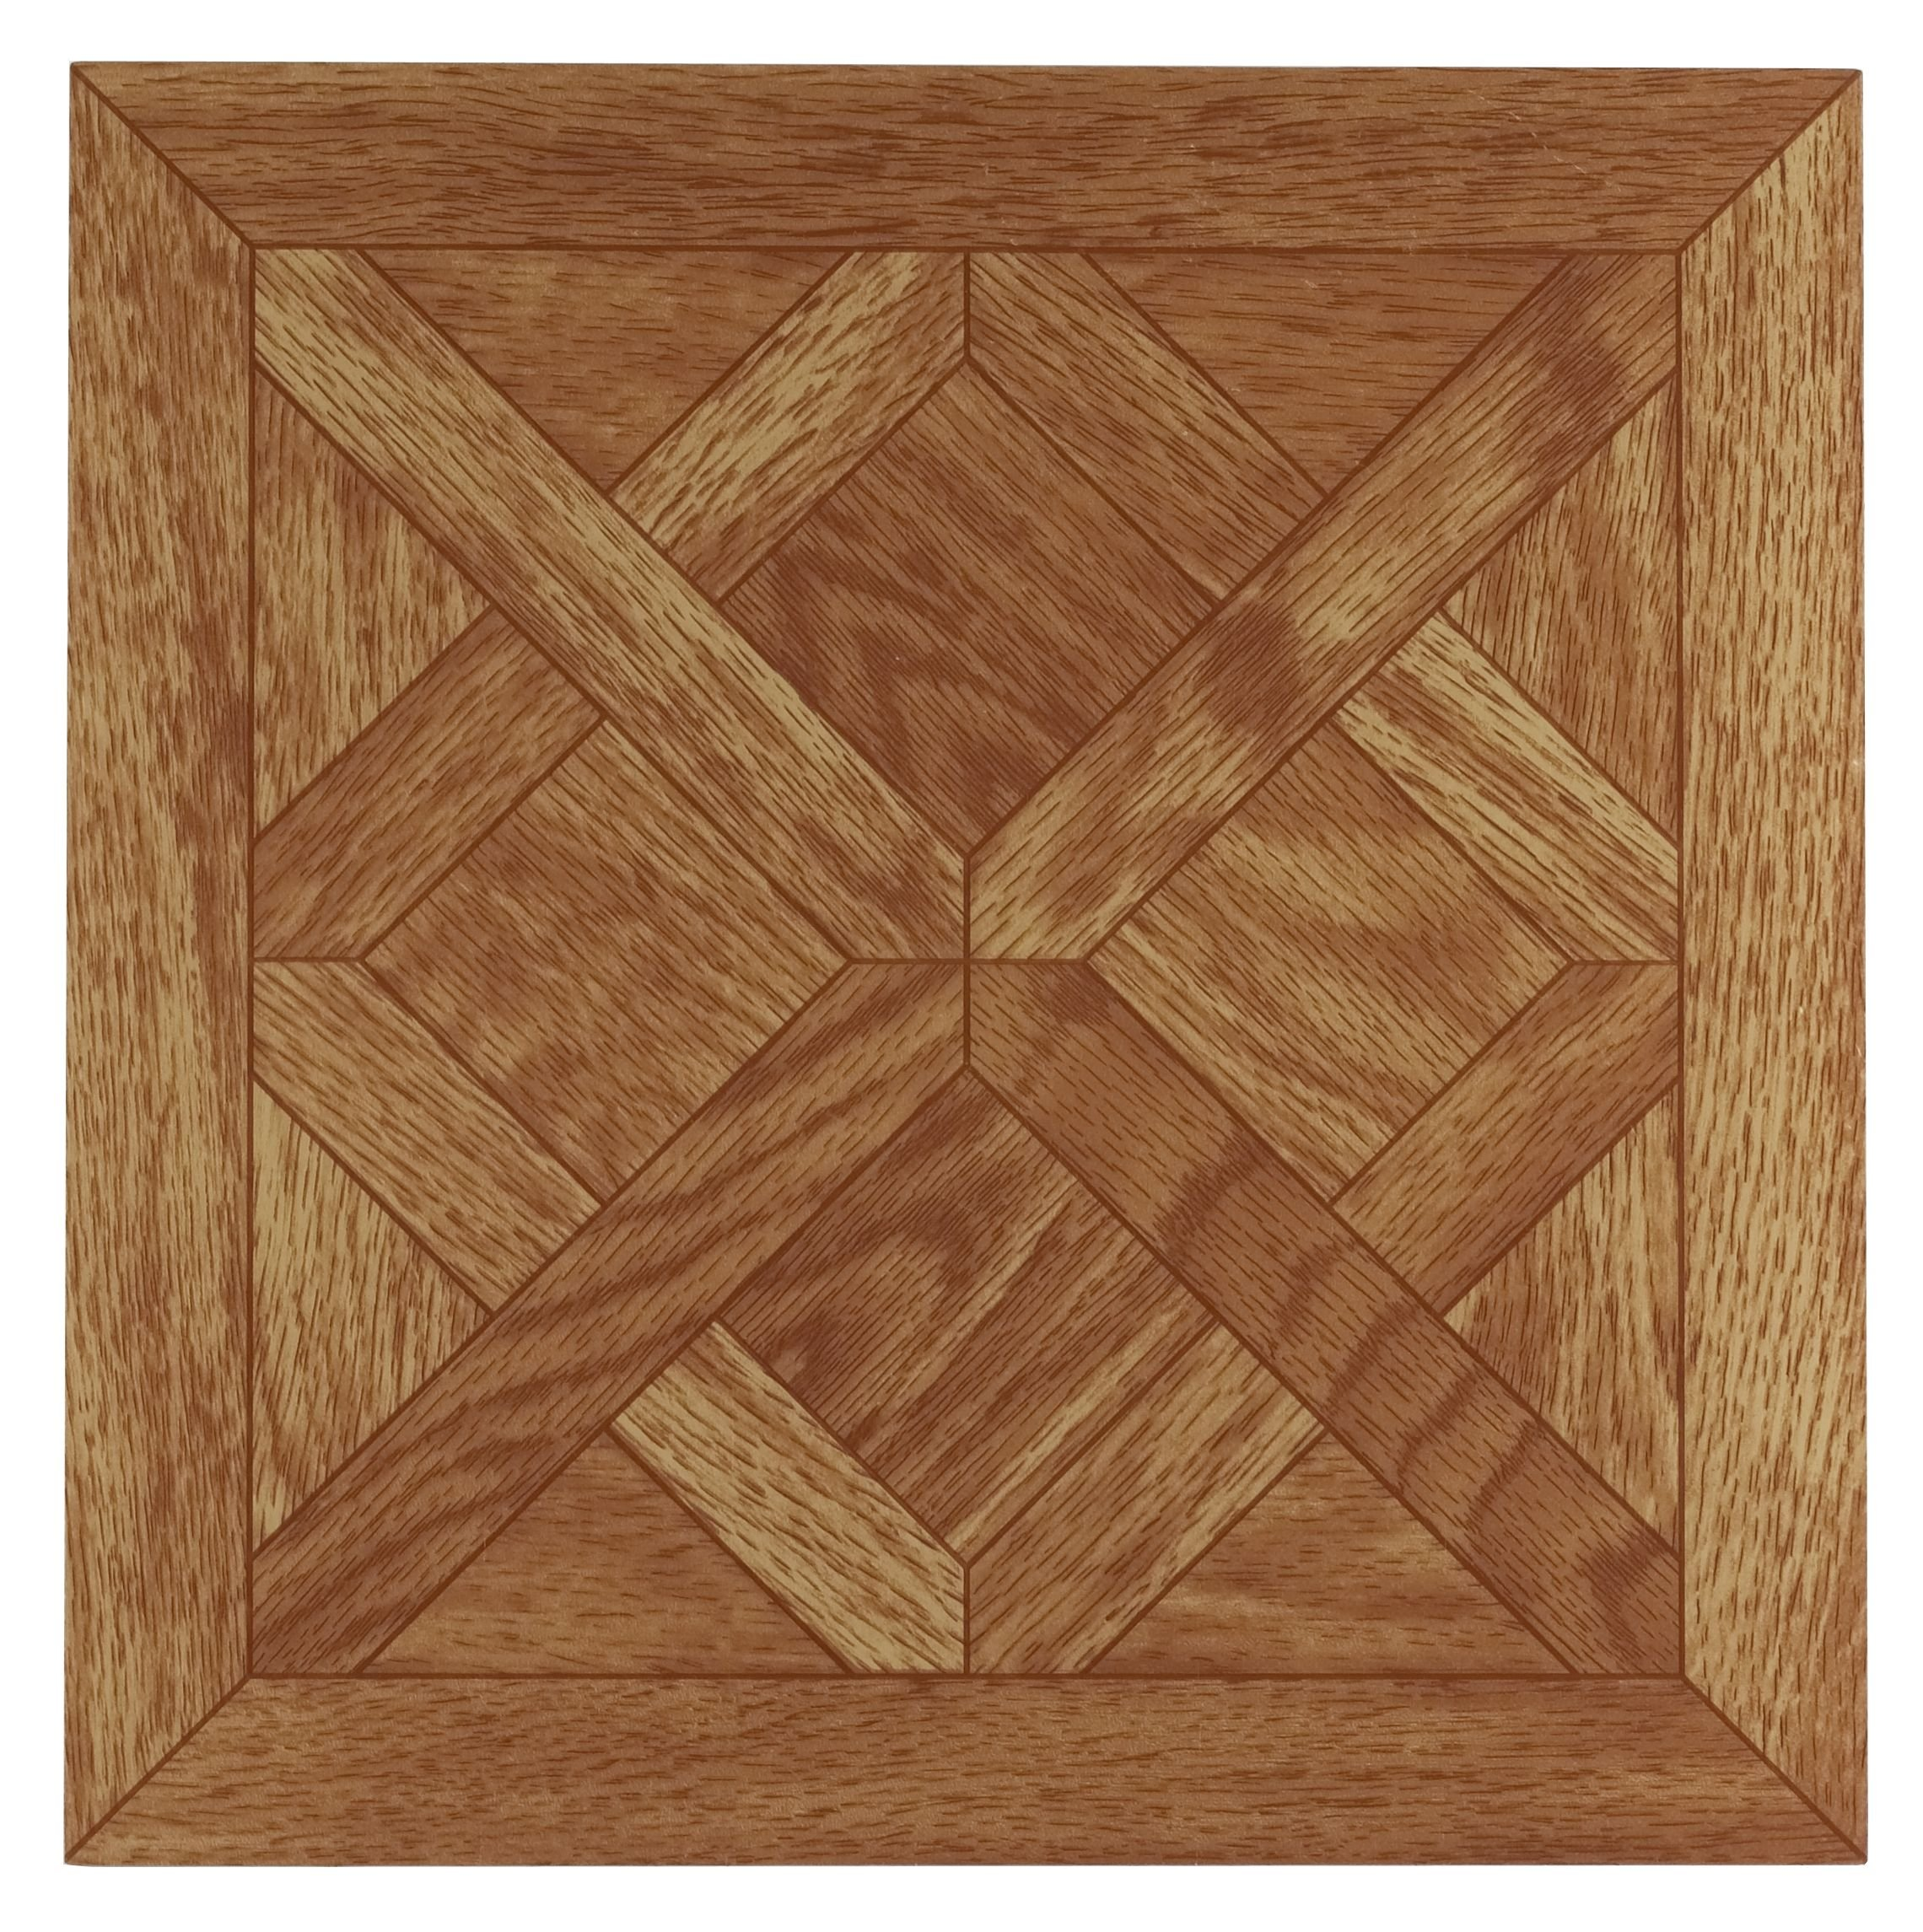 Achim Home Furnishings FTVWD20120 Nexus 12-Inch Vinyl Tile, Wood Classic Parquet Oak, 20-Pack by Achim Home Furnishings